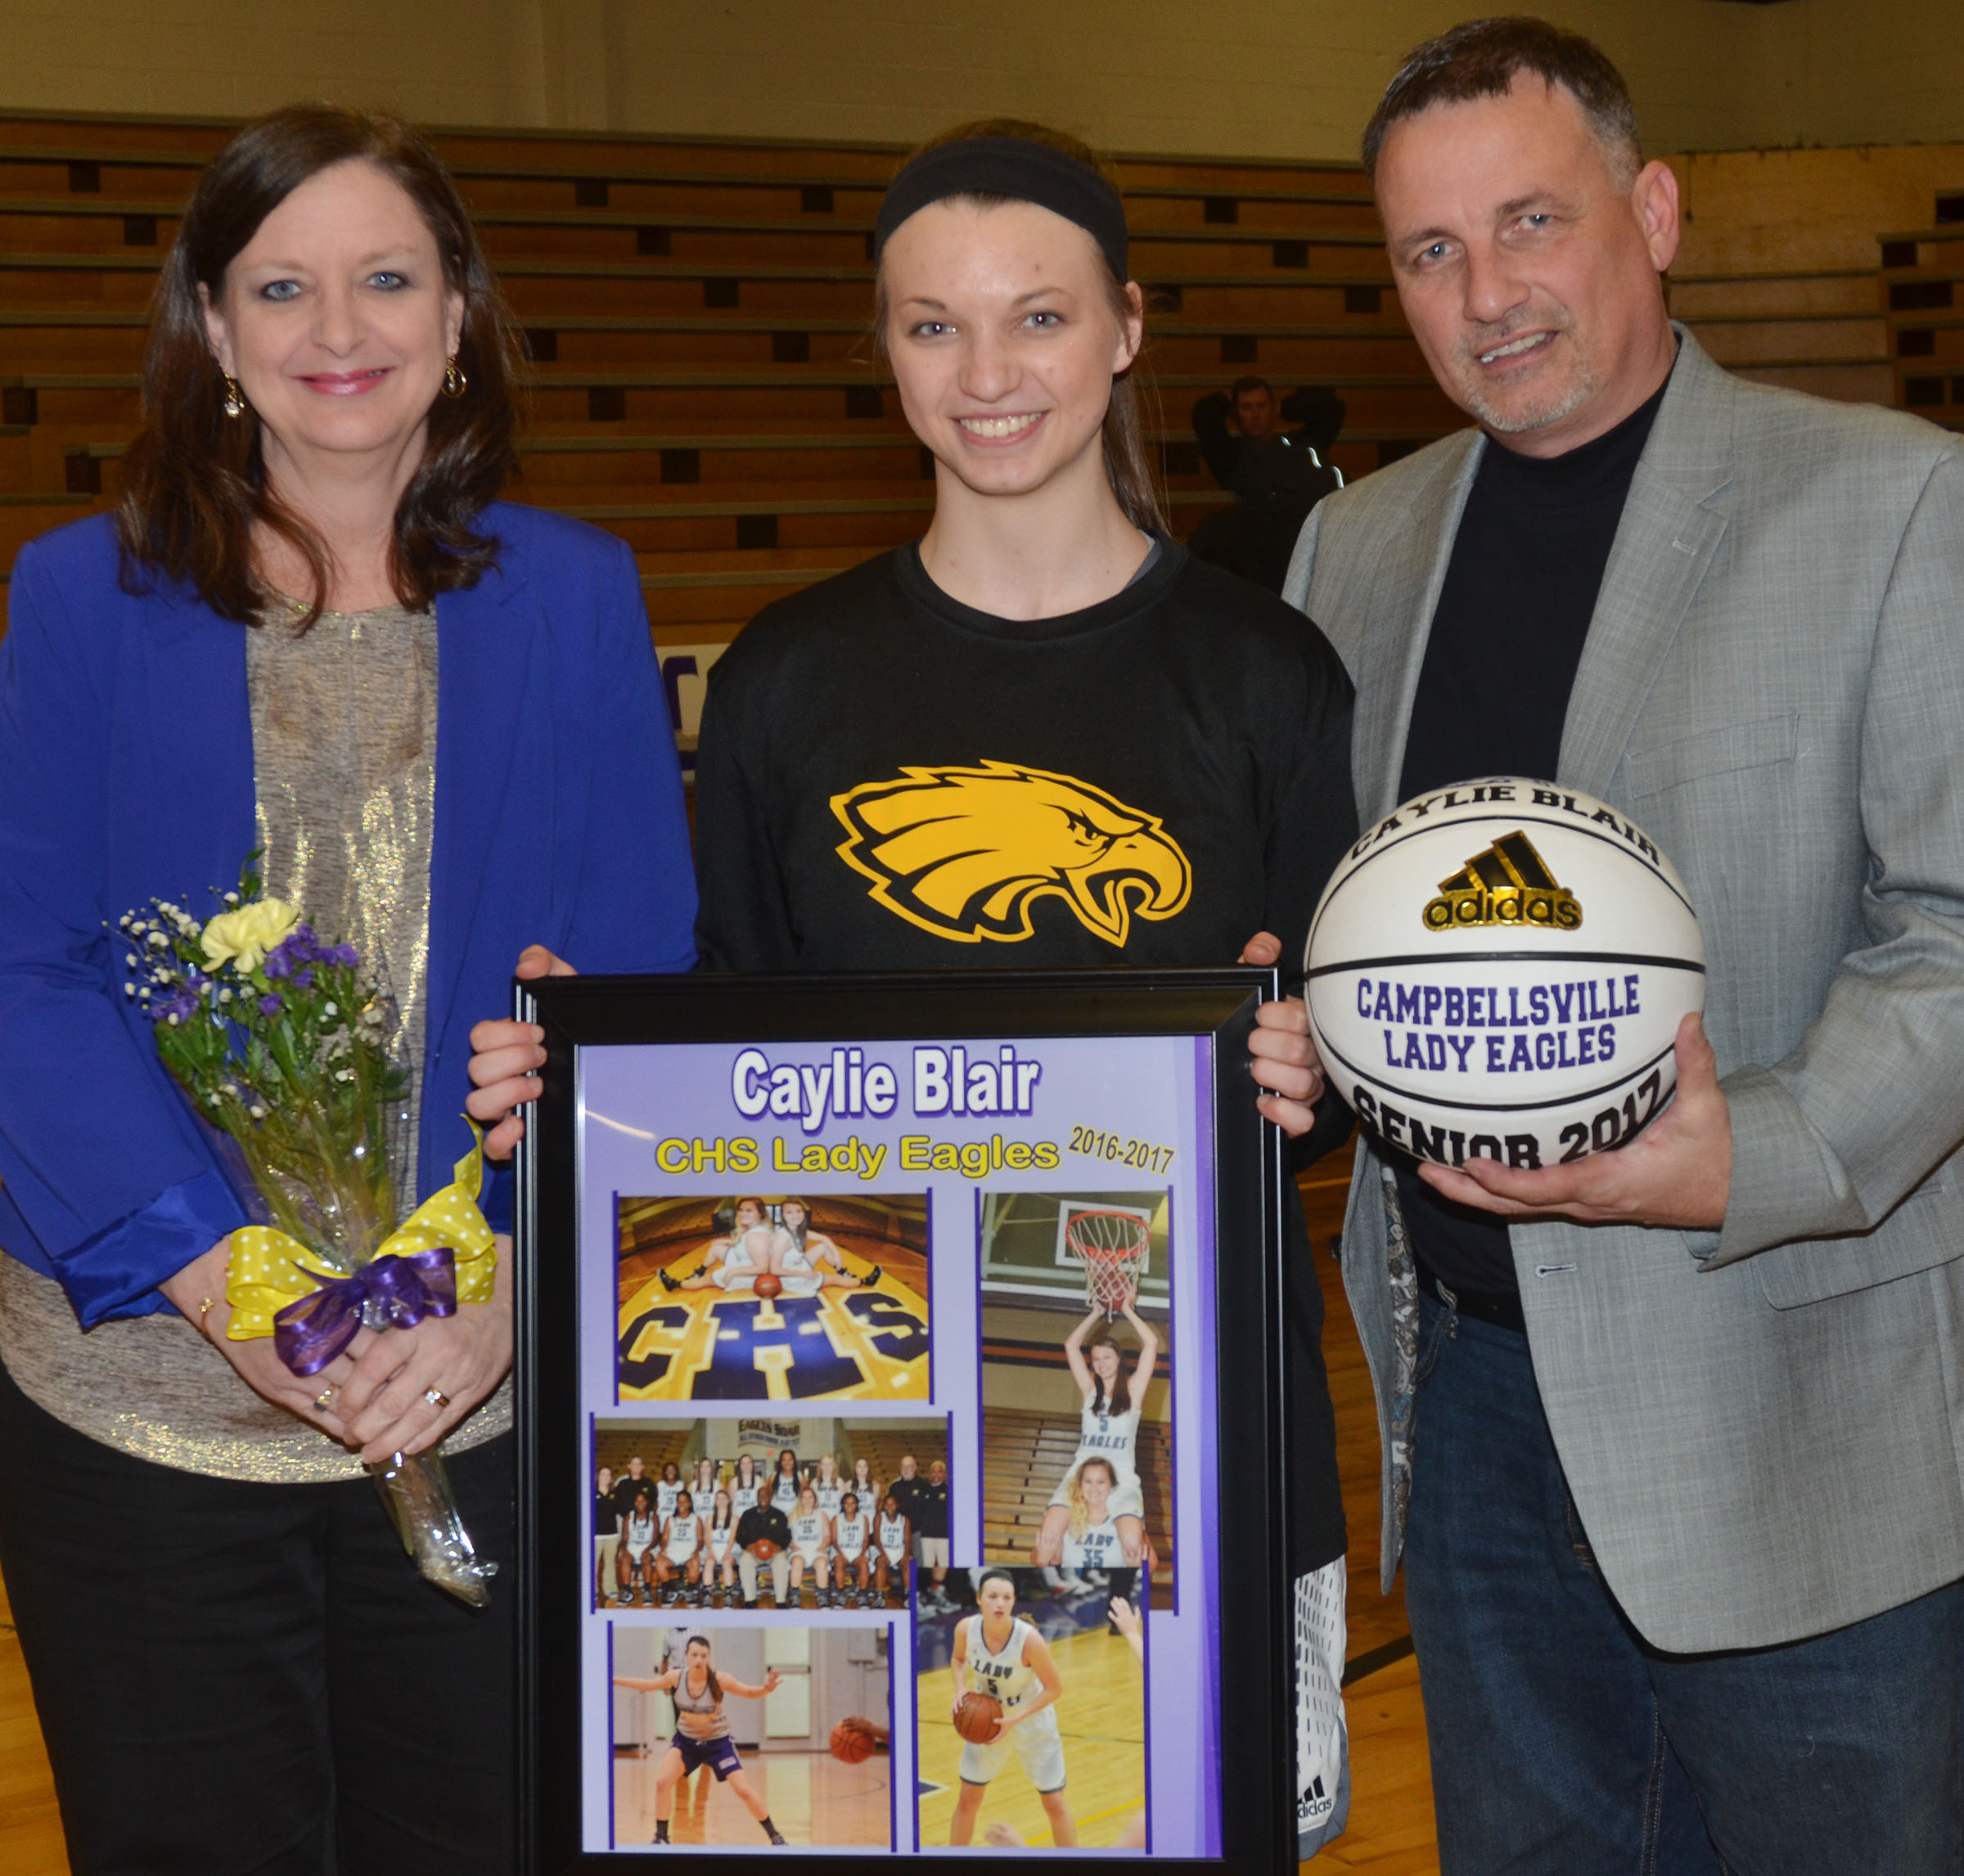 CHS girls' basketball senior player Caylie Blair is honored. She is pictured with her parents, Terri Slinker and Bryan Blair.